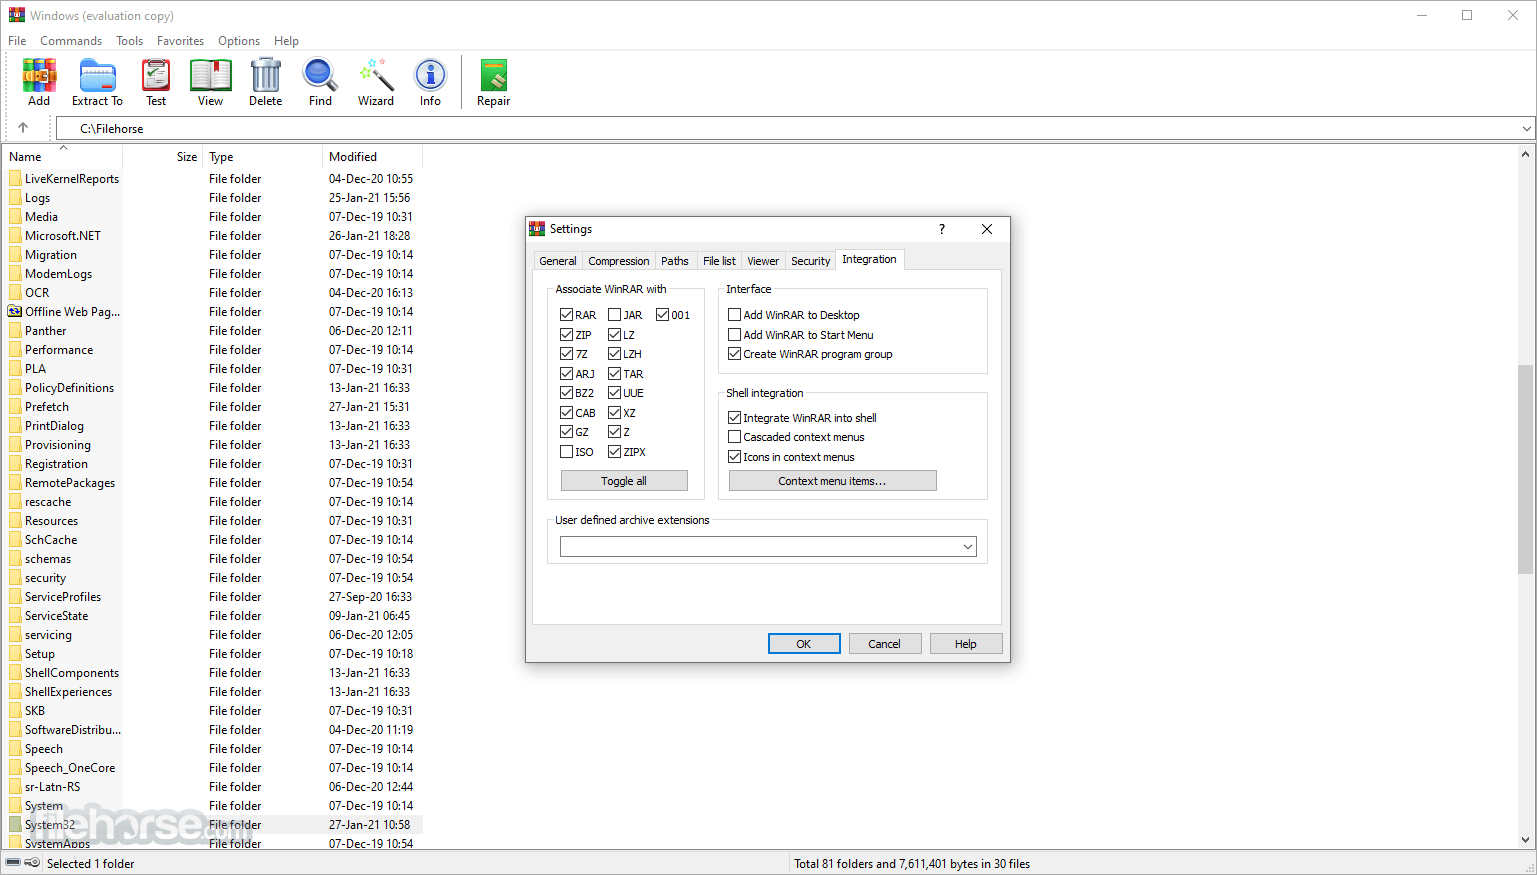 WinRAR 5.61 Beta 1 (32-bit) Screenshot 5